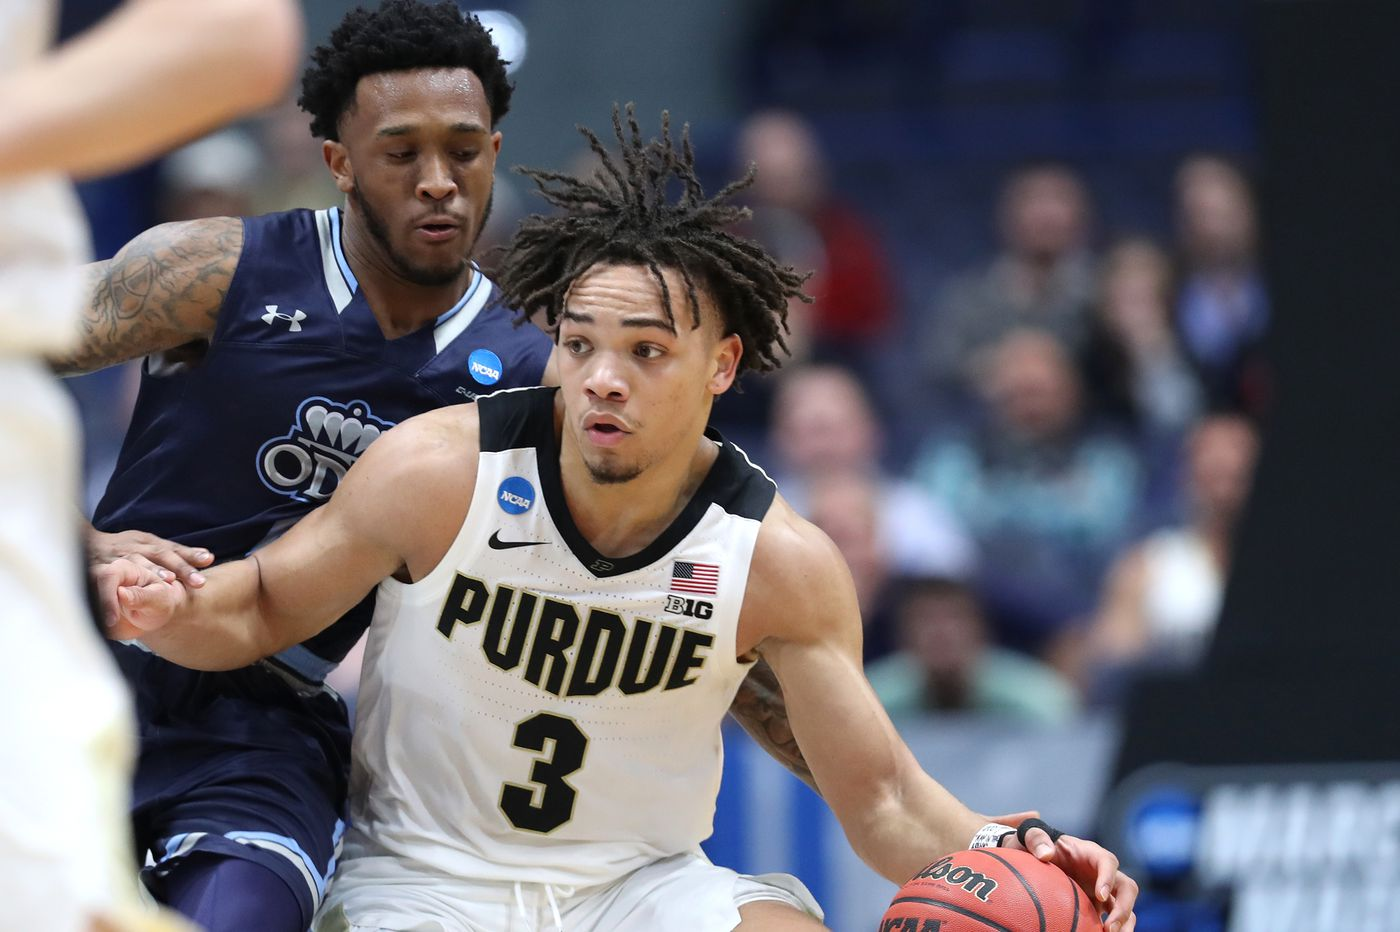 Purdue vs Villanova Live Stream Reddit for NCAA Tournament